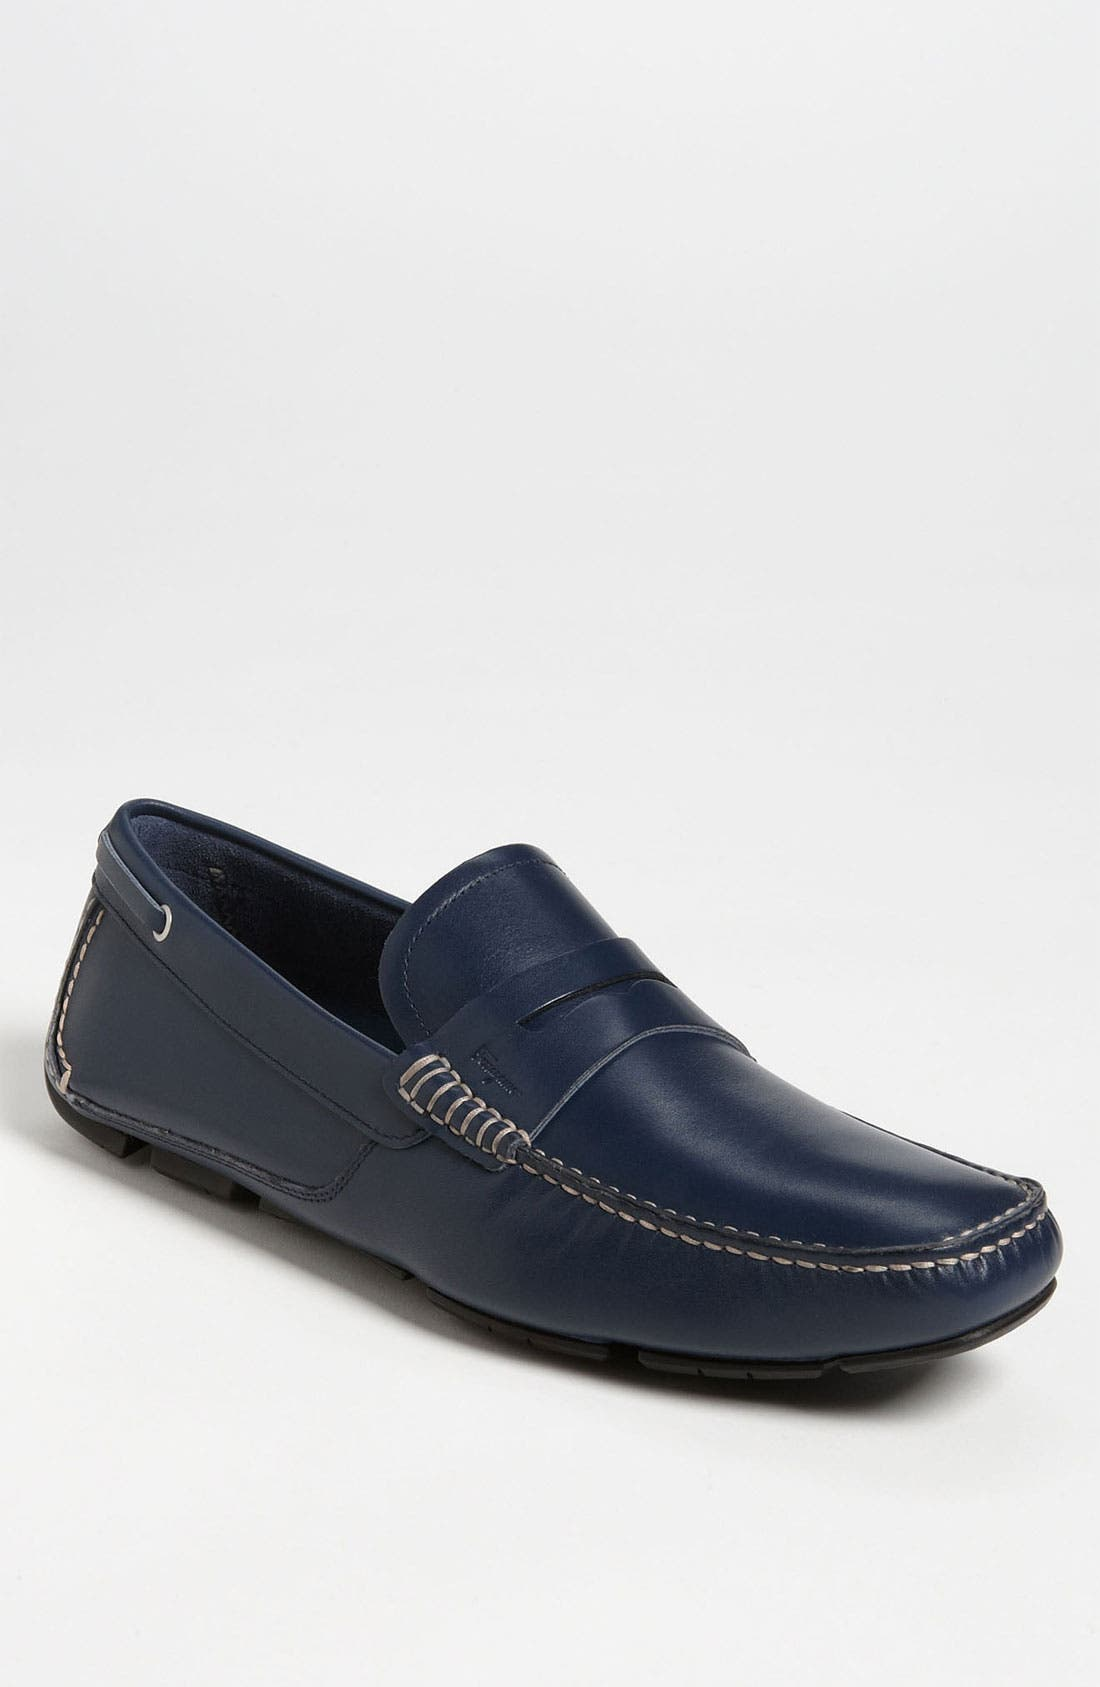 Alternate Image 1 Selected - Salvatore Ferragamo 'Billy' Driving Shoe